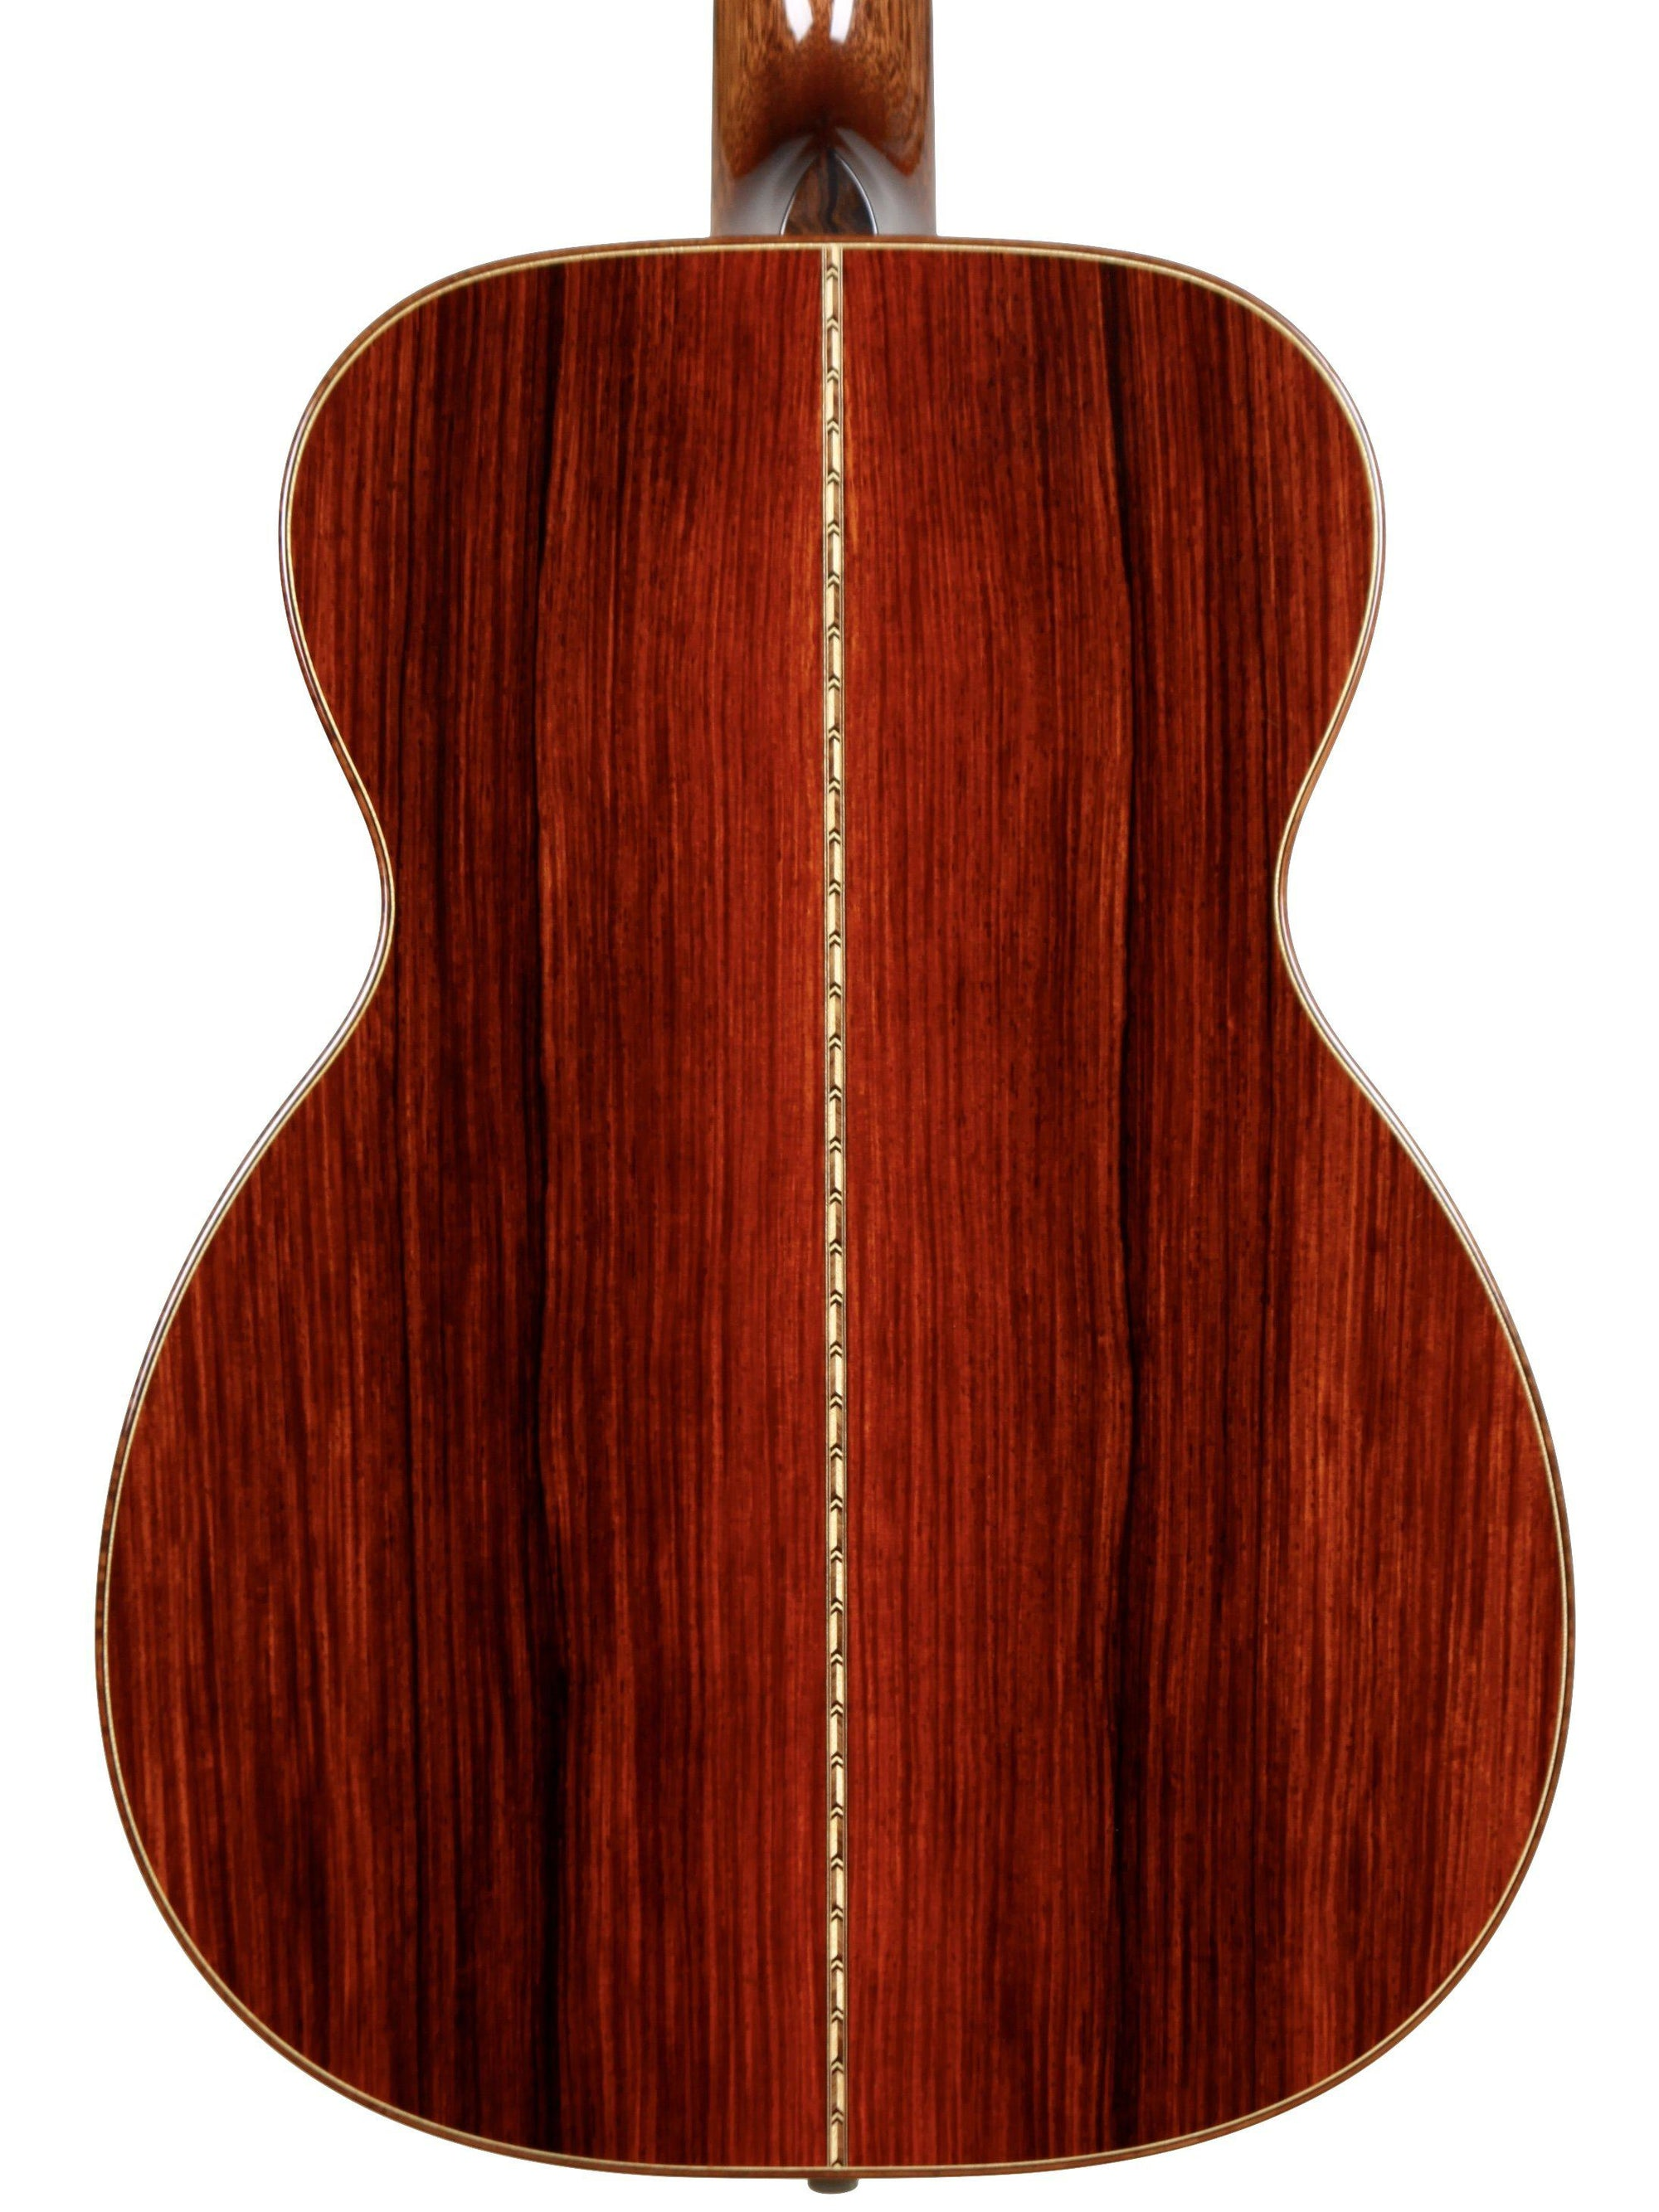 Bourgeois 0 Custom Alpine/ Cocobolo Pre Owned - Bourgeois Guitars - Heartbreaker Guitars